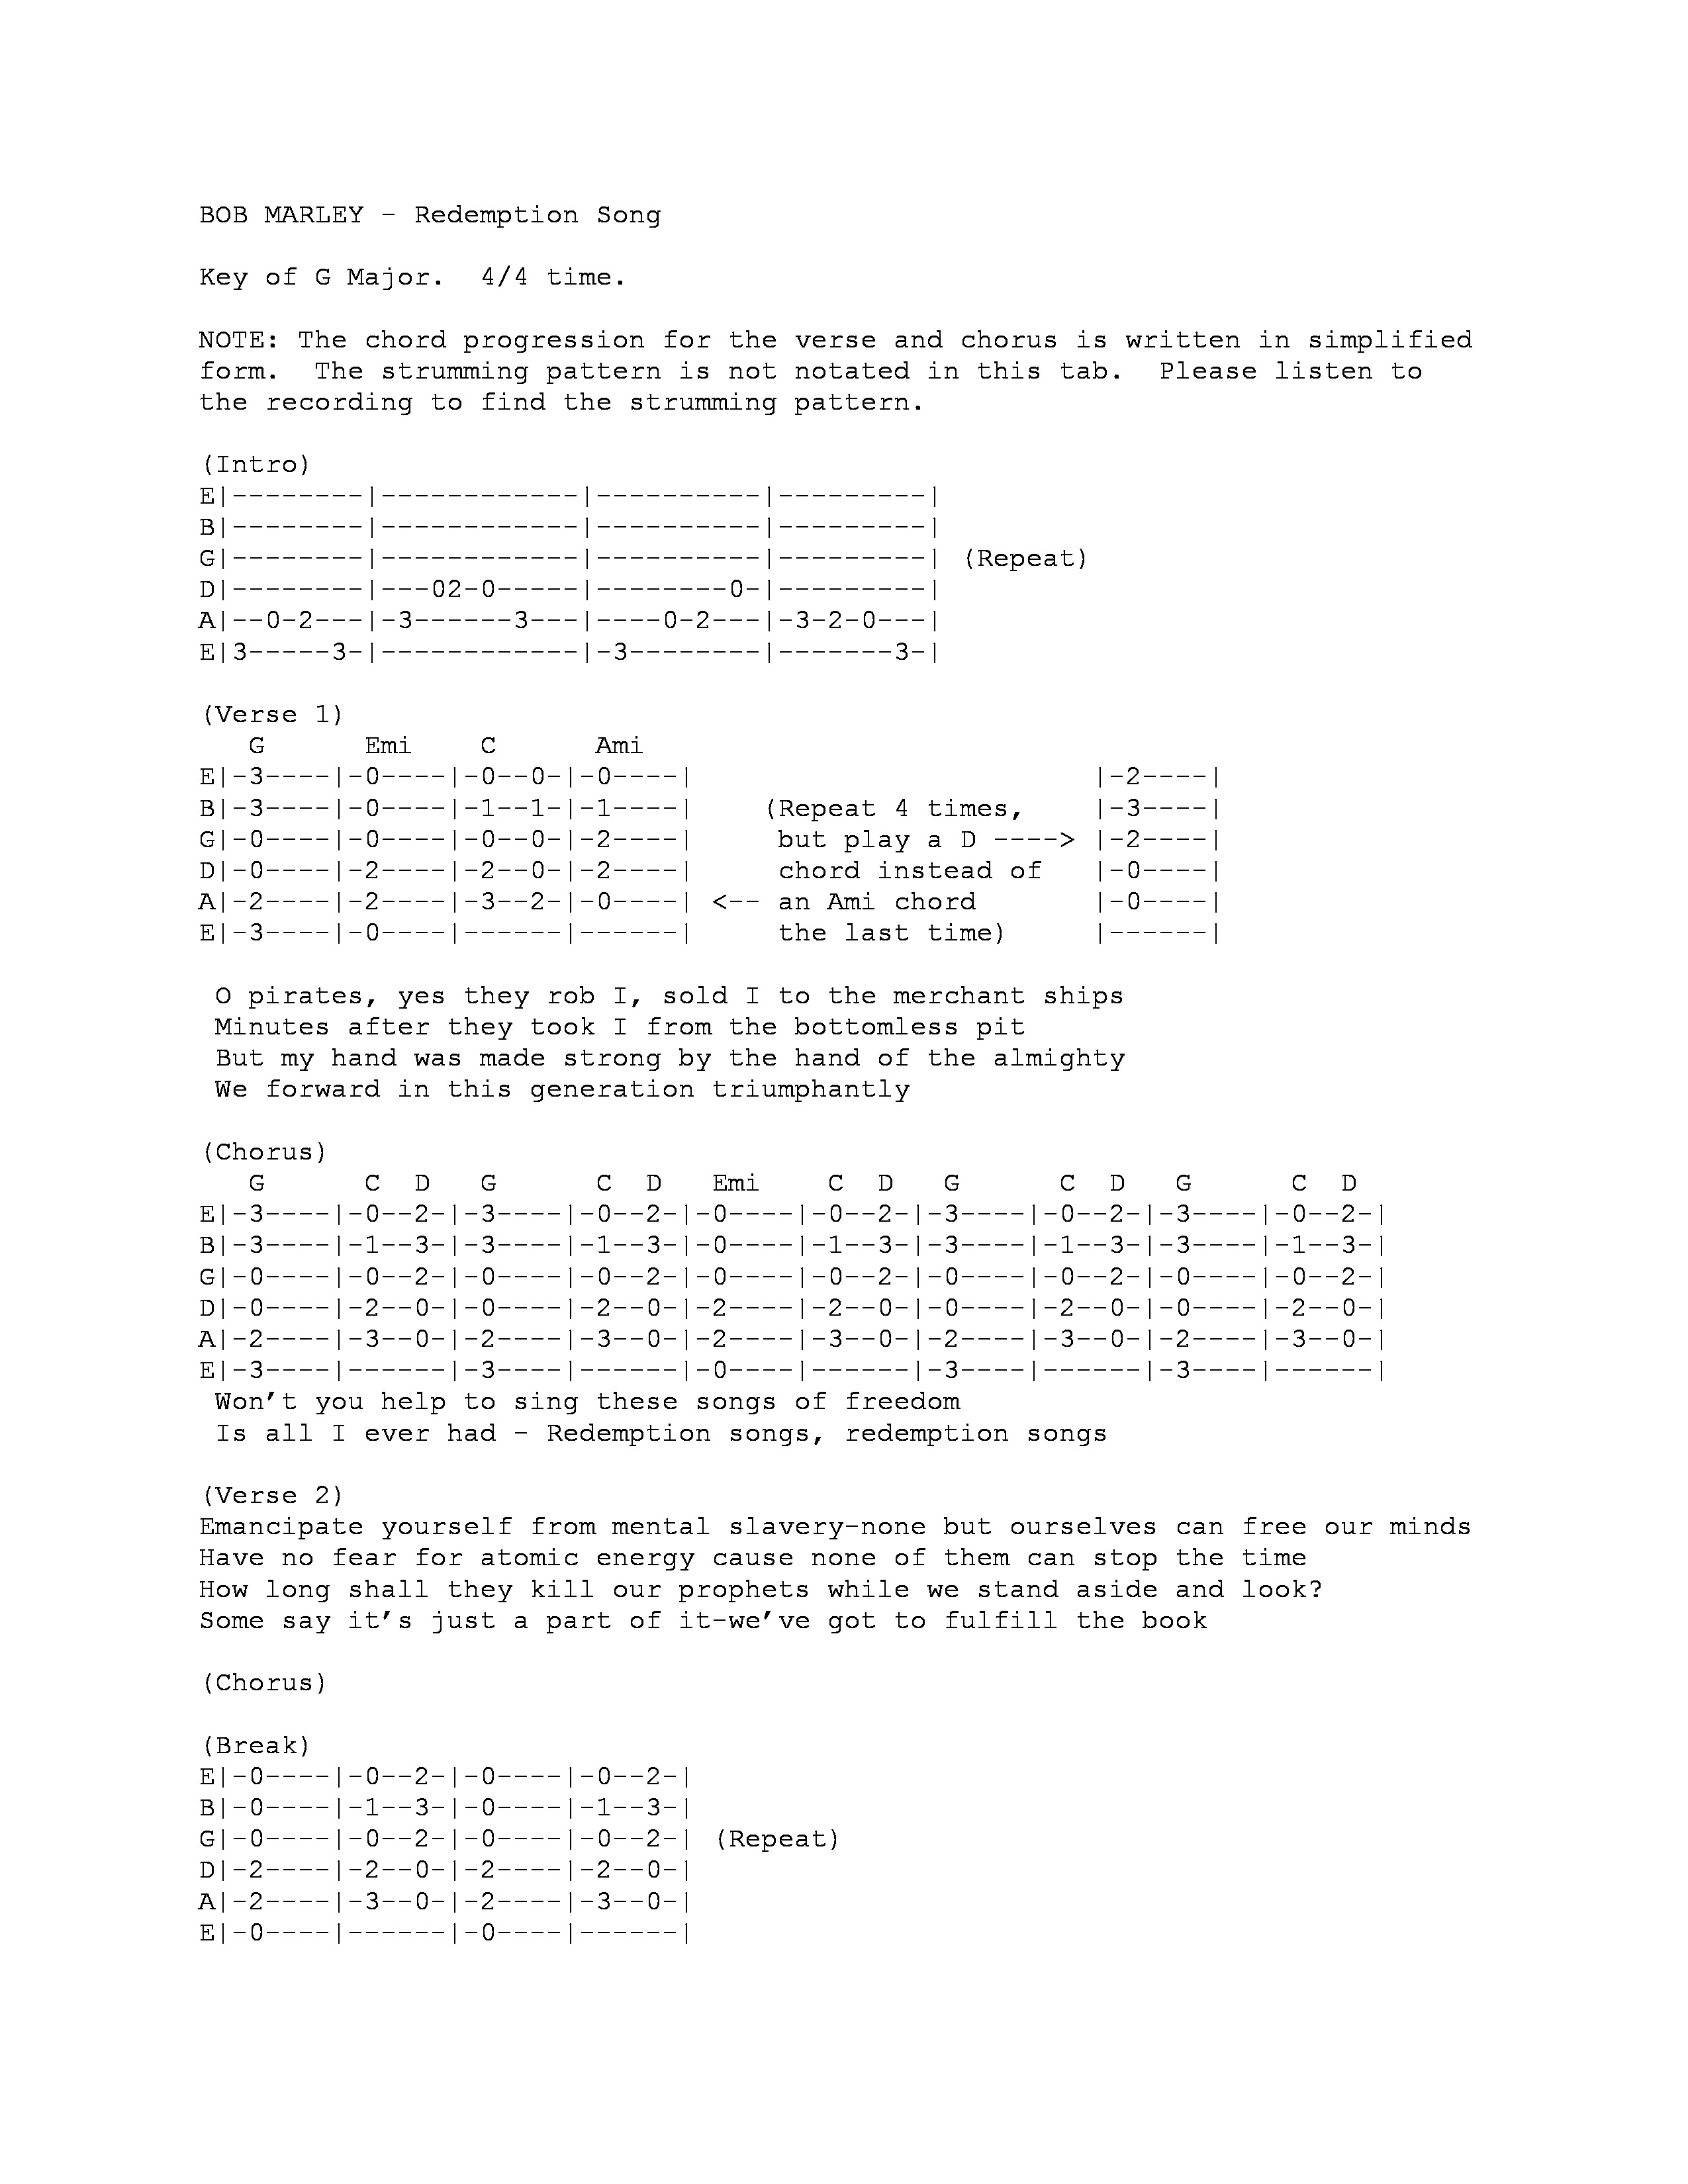 Redemption Song Chords Redemption Song Guitar Tab Stairway To Honolulu